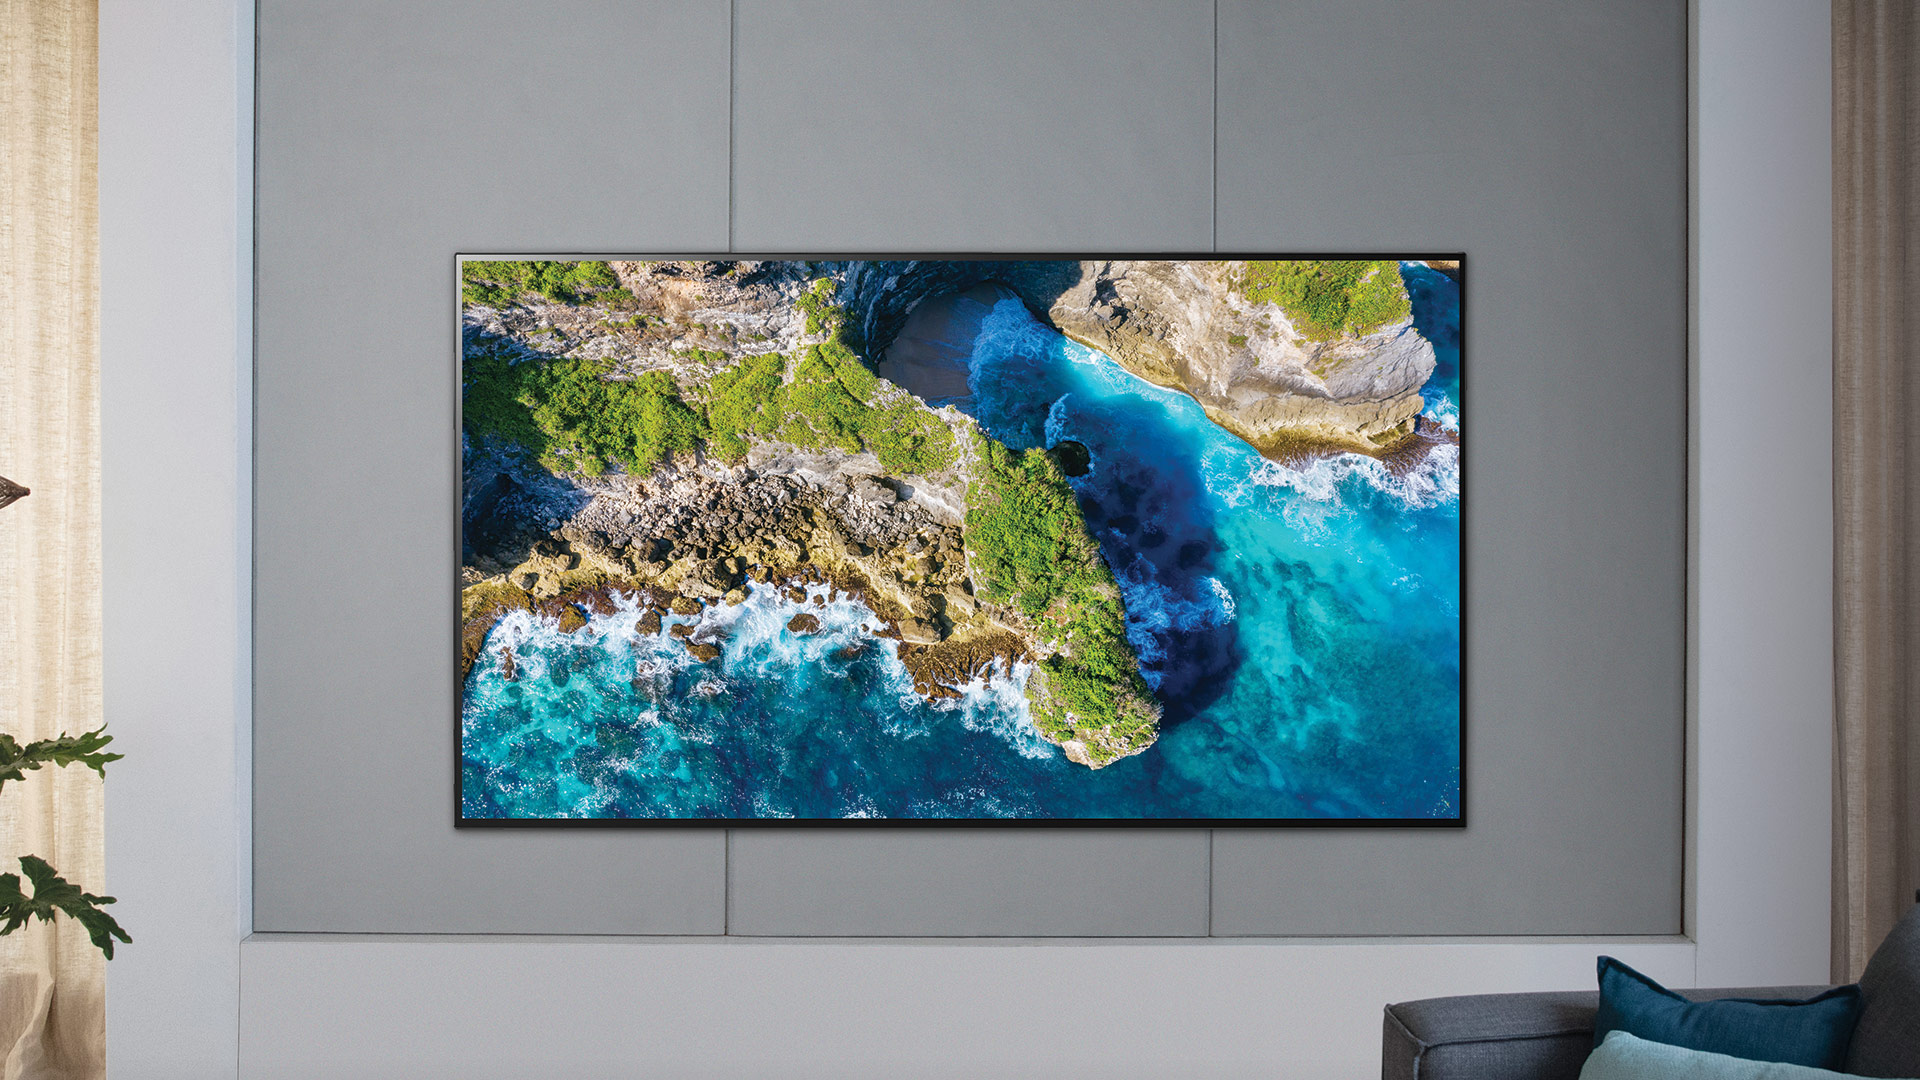 LG OLED hanging on wall